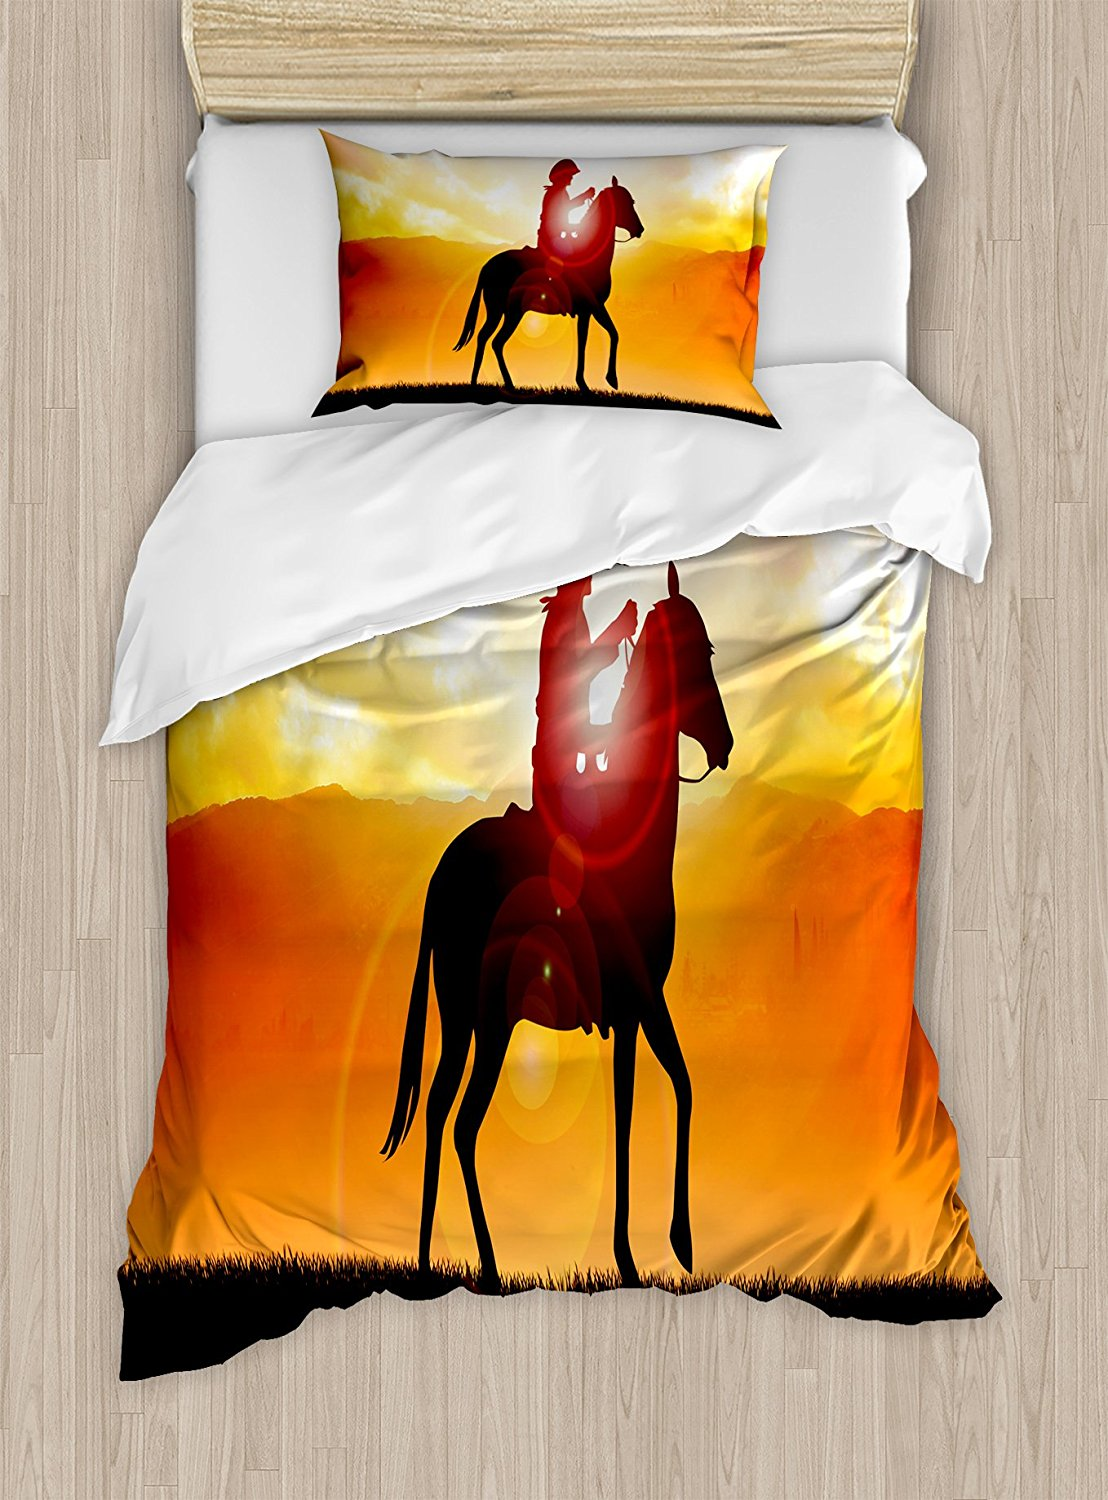 Western Duvet Cover Set Silhouette Cowboy Riding a Horse During Vibrant Sunset Sky Americana Landscape 4 Piece Bedding Set